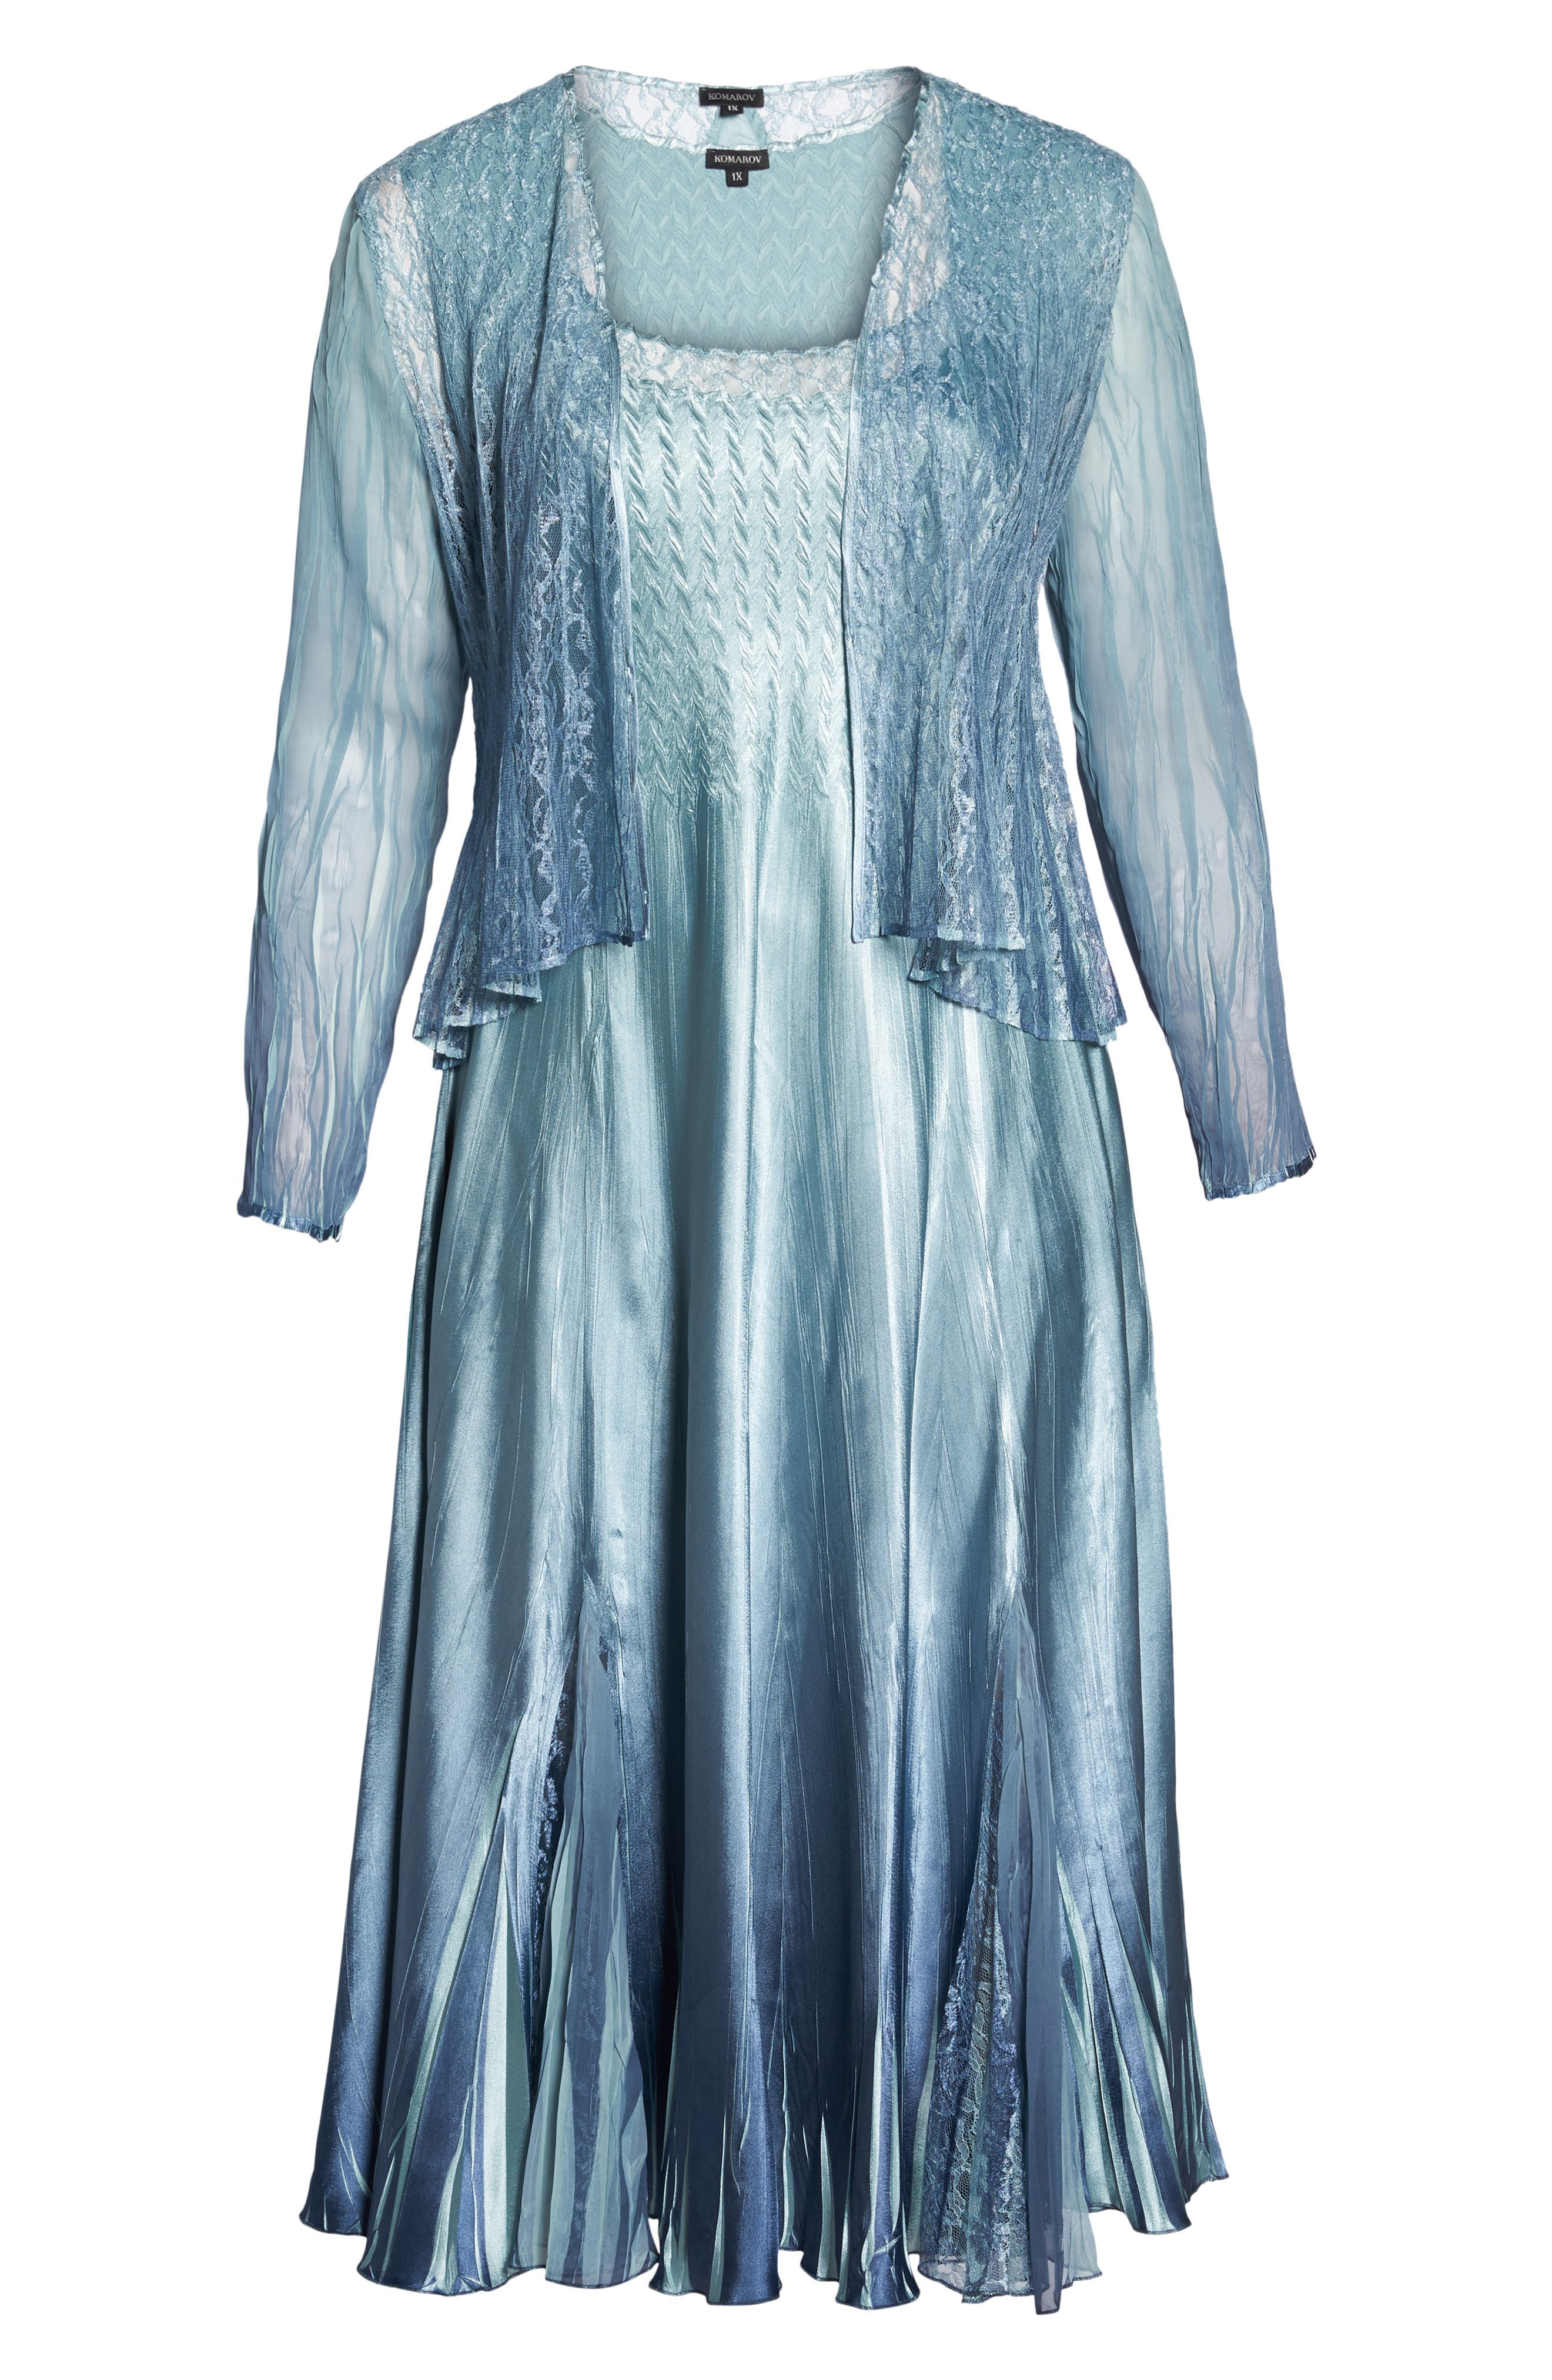 Lace & Charmeuse A-Lined Dress with Jacket,                             Alternate thumbnail 6, color,                             Ocean Blue Night Ombre